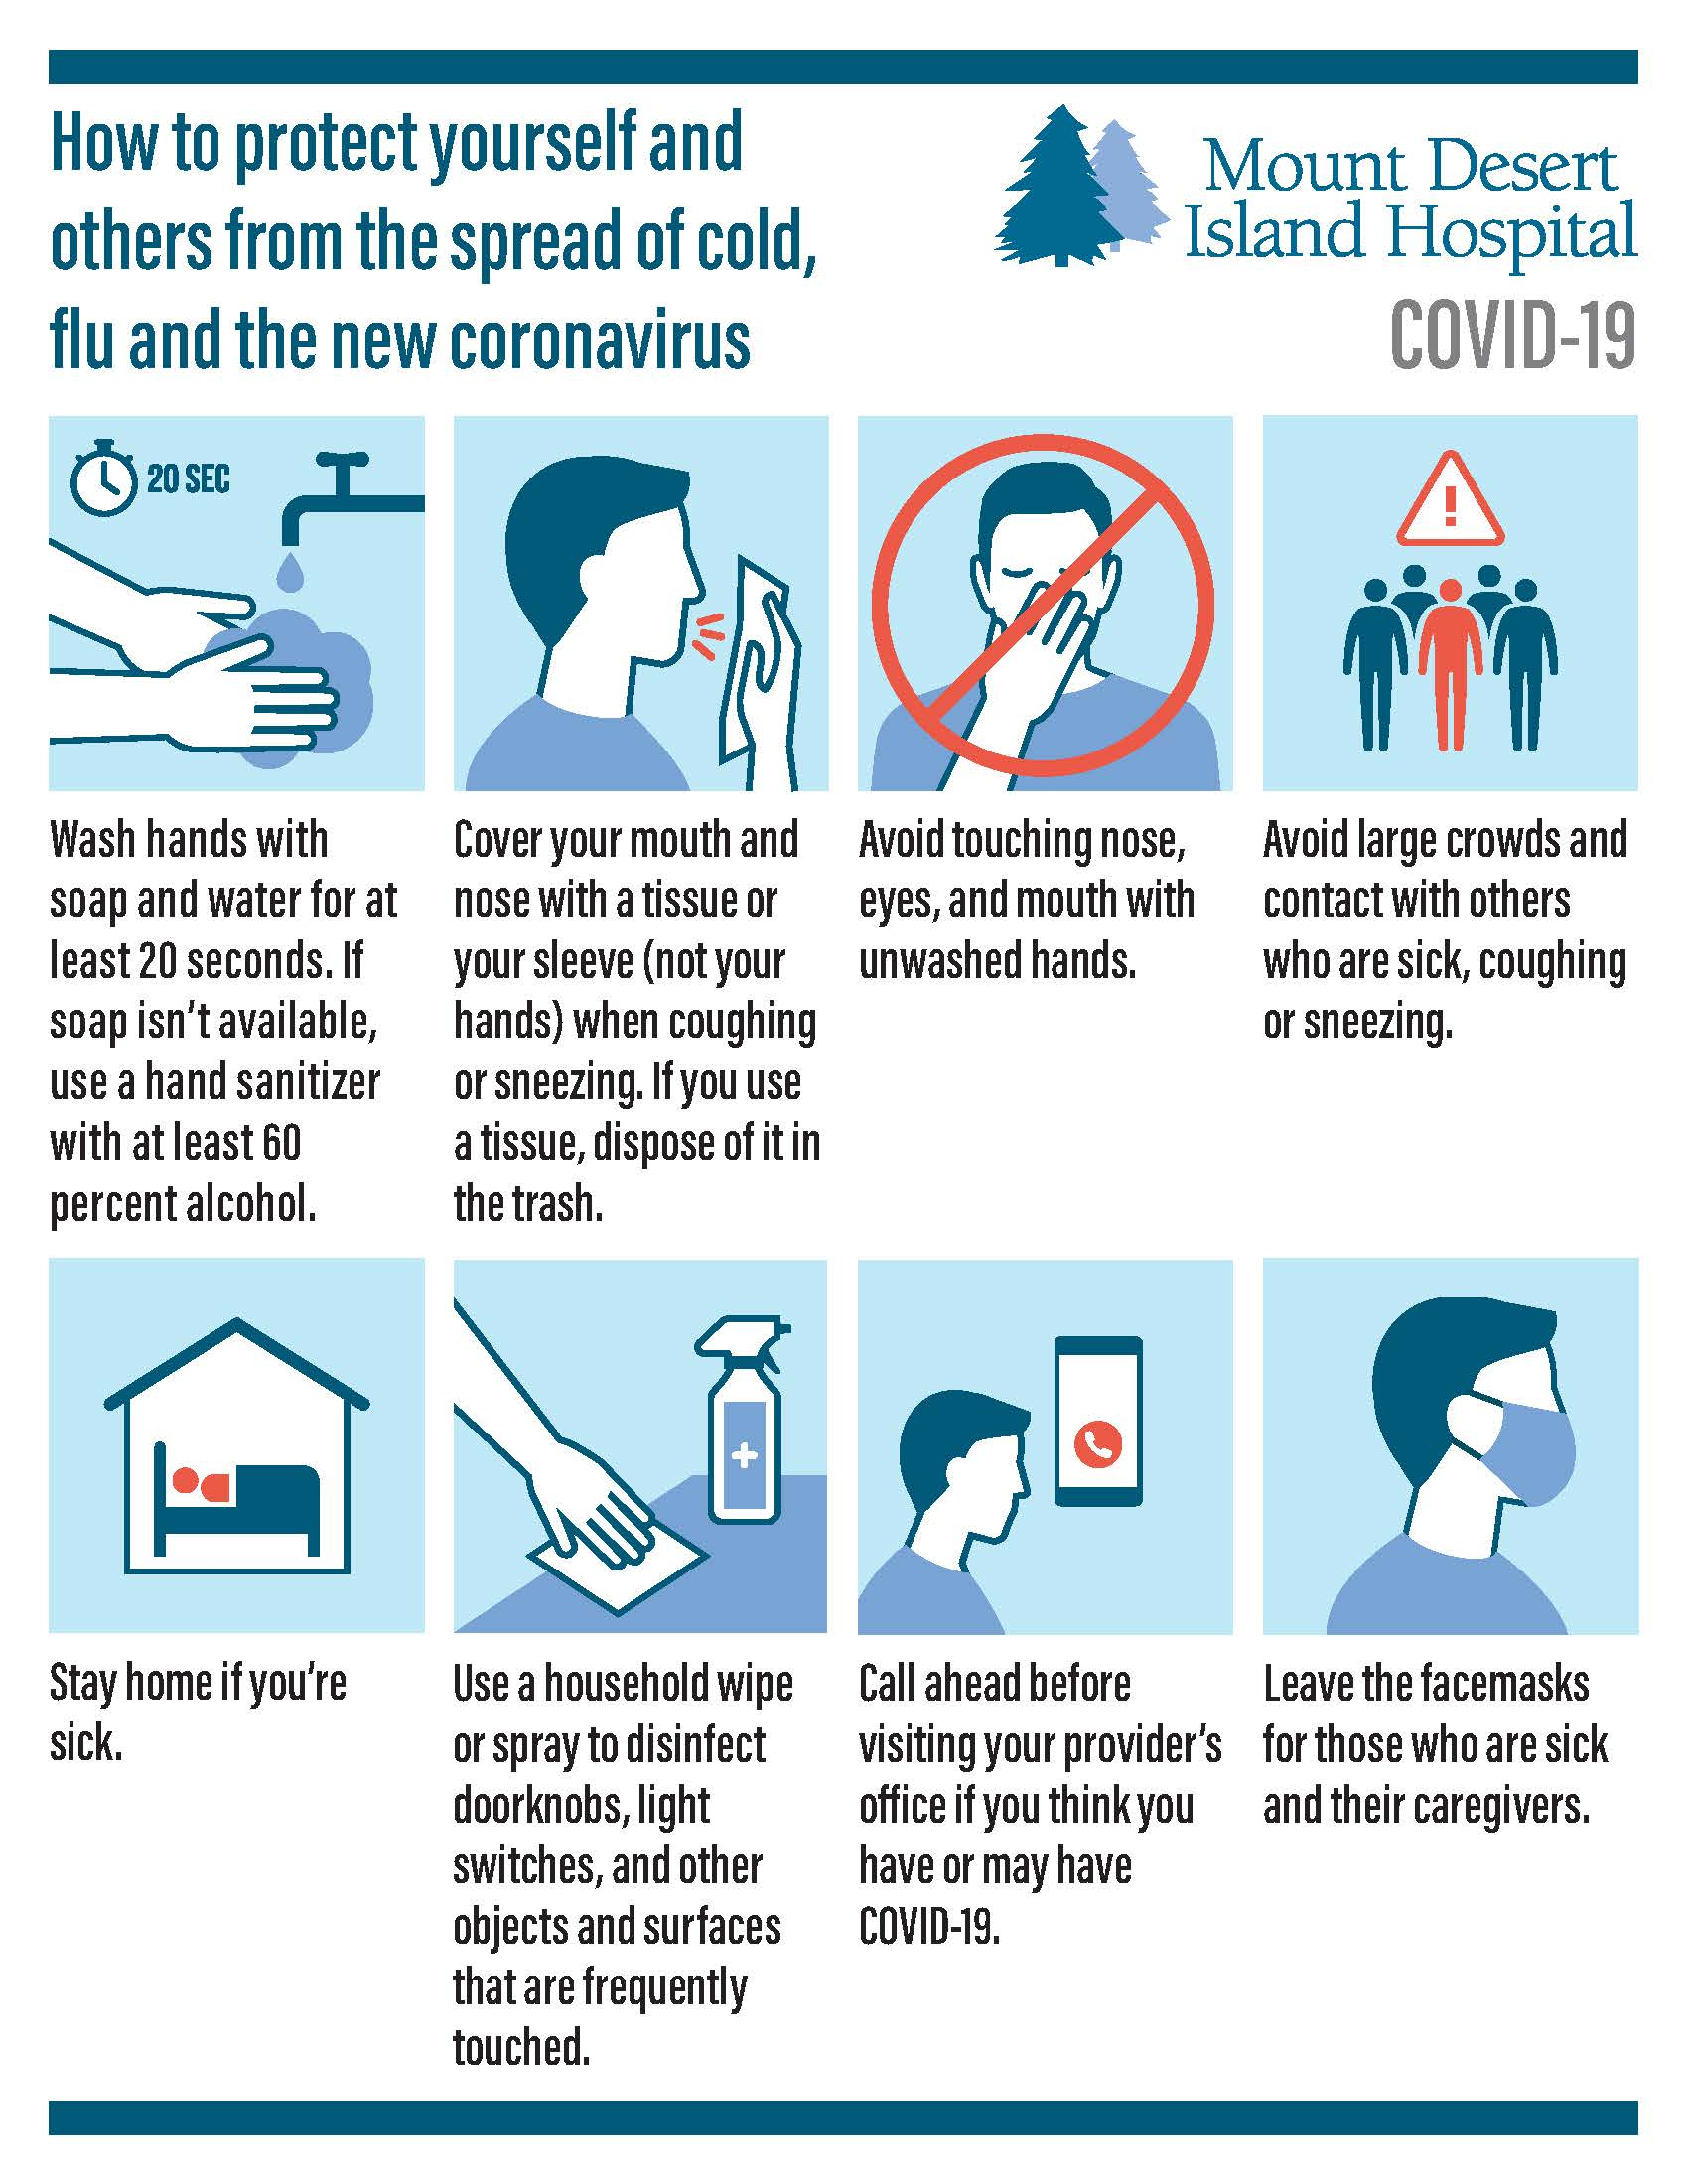 MDI-Hospital Public Coronavirus Prevention Tips